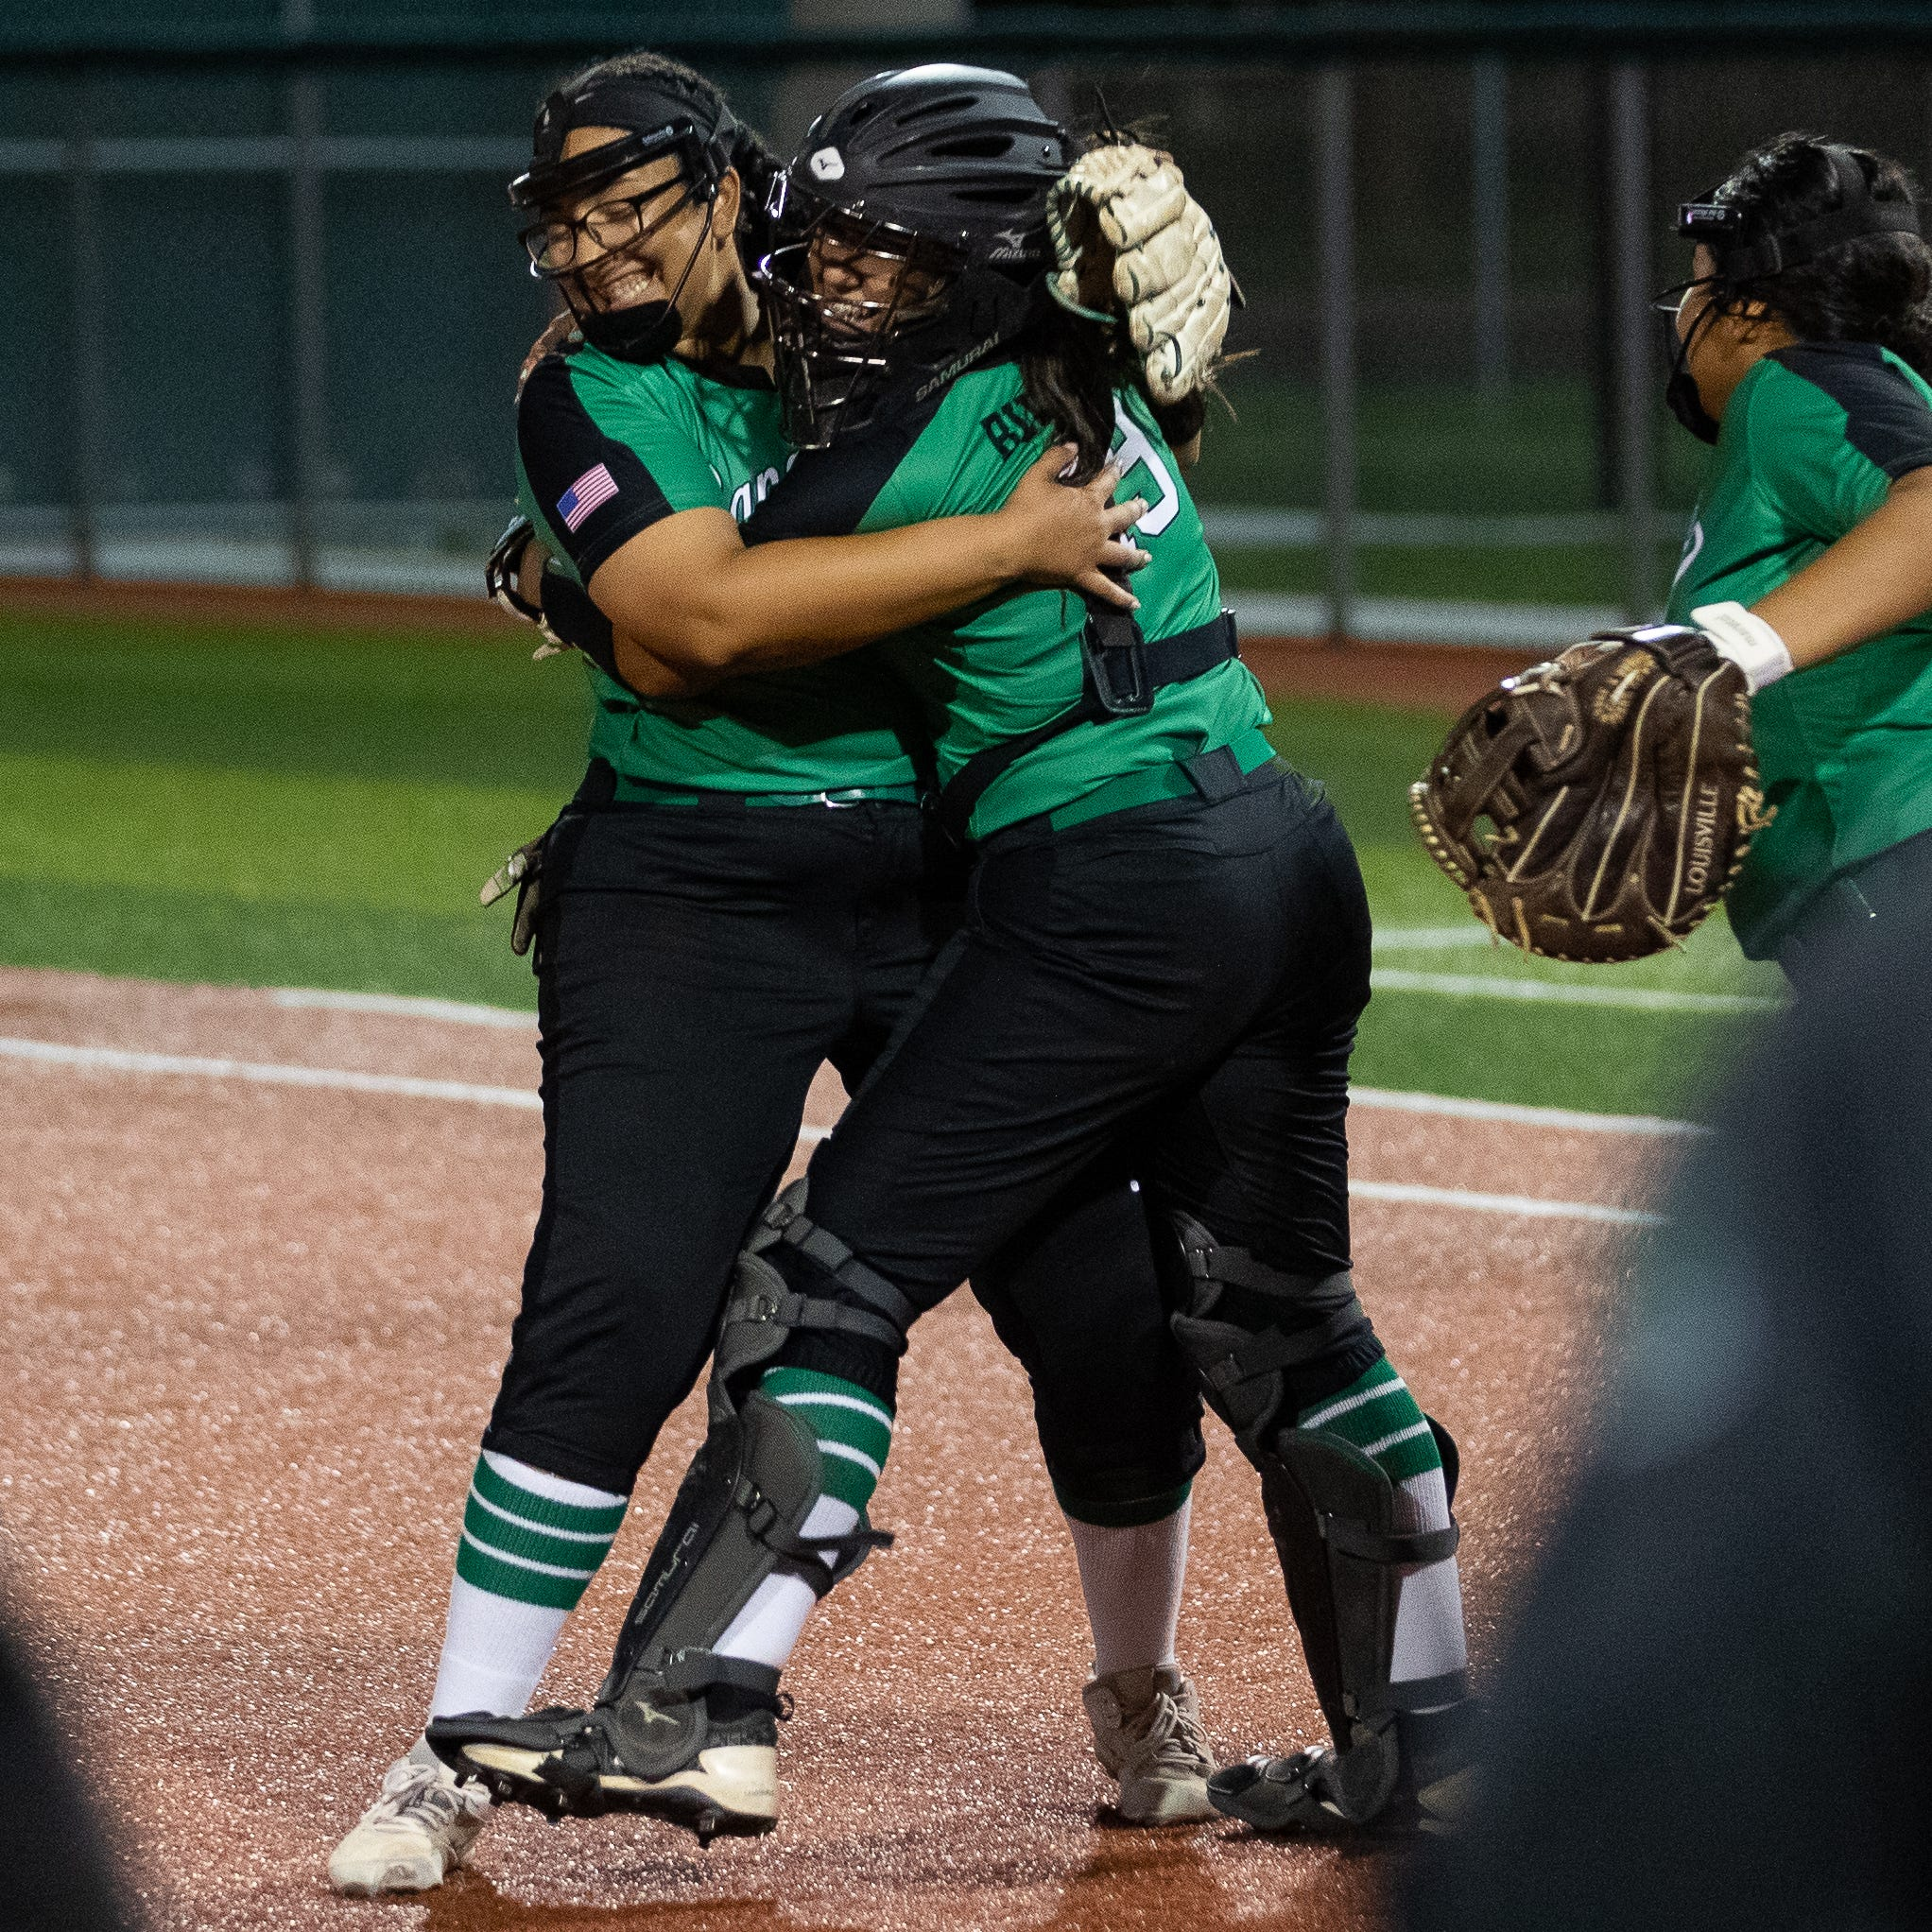 High School Softball: Banquete upsets rival Bishop in regional quarterfinals